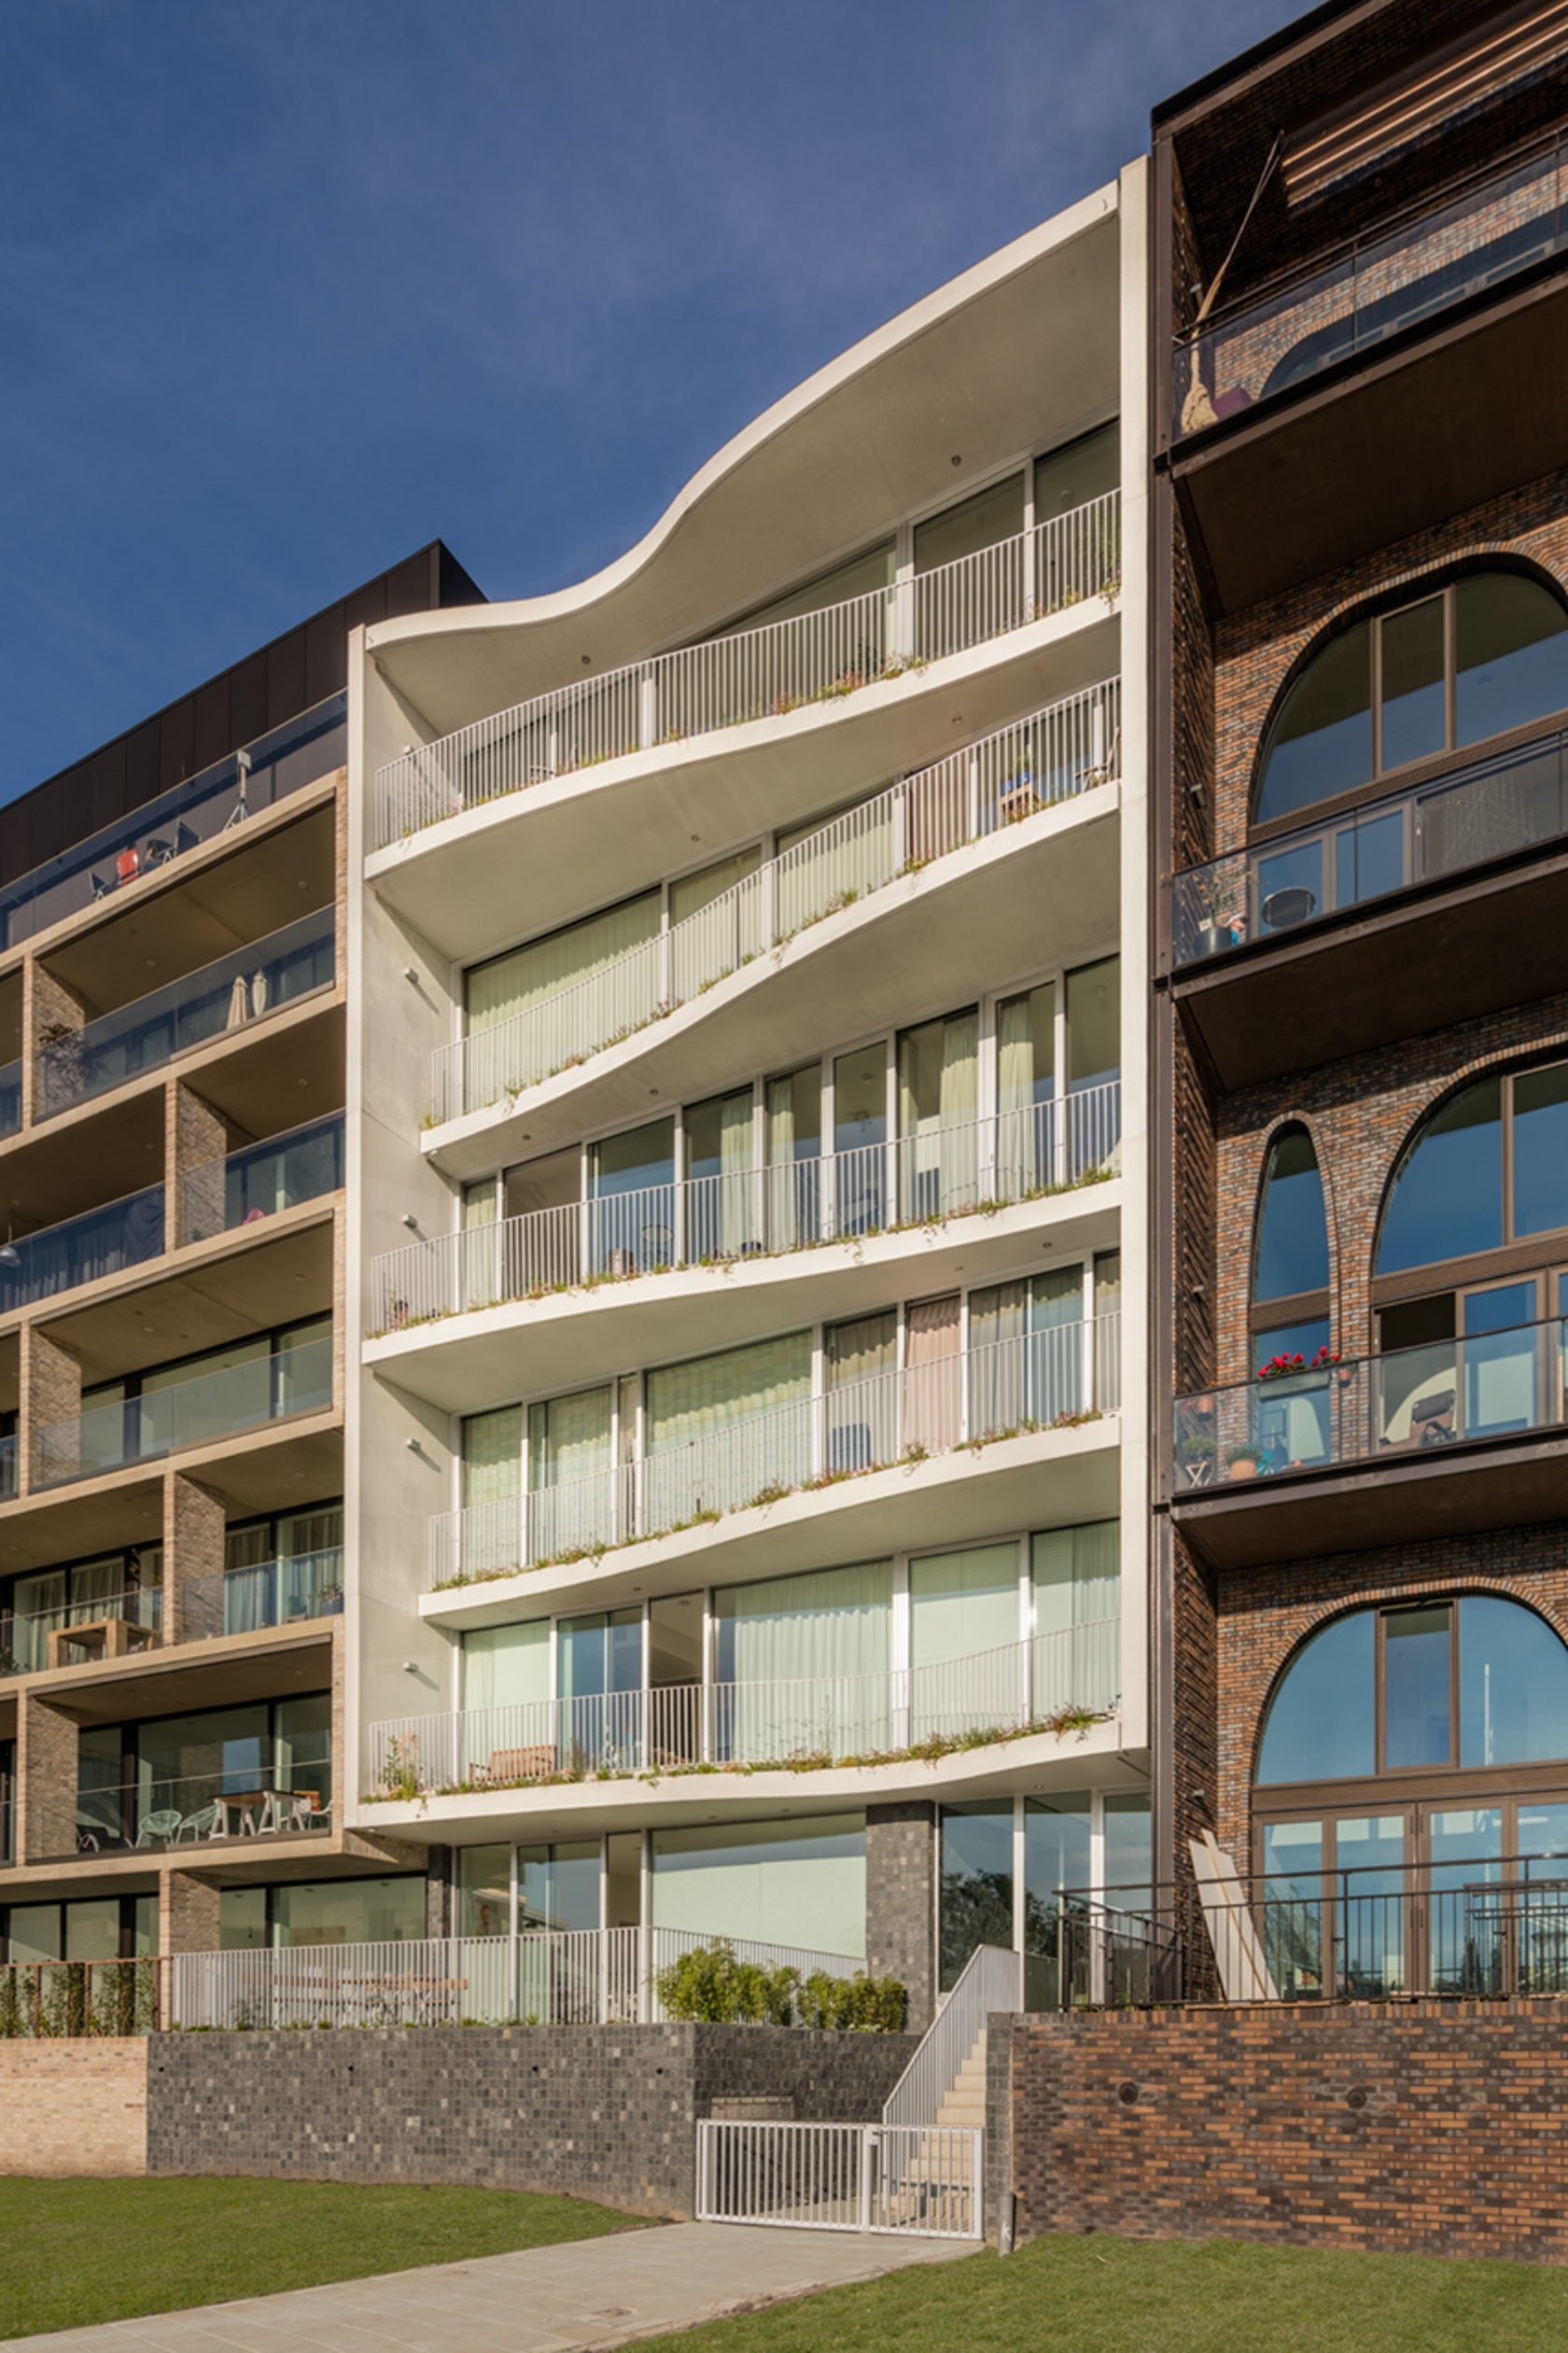 Lofts by the Amstel on Architizer